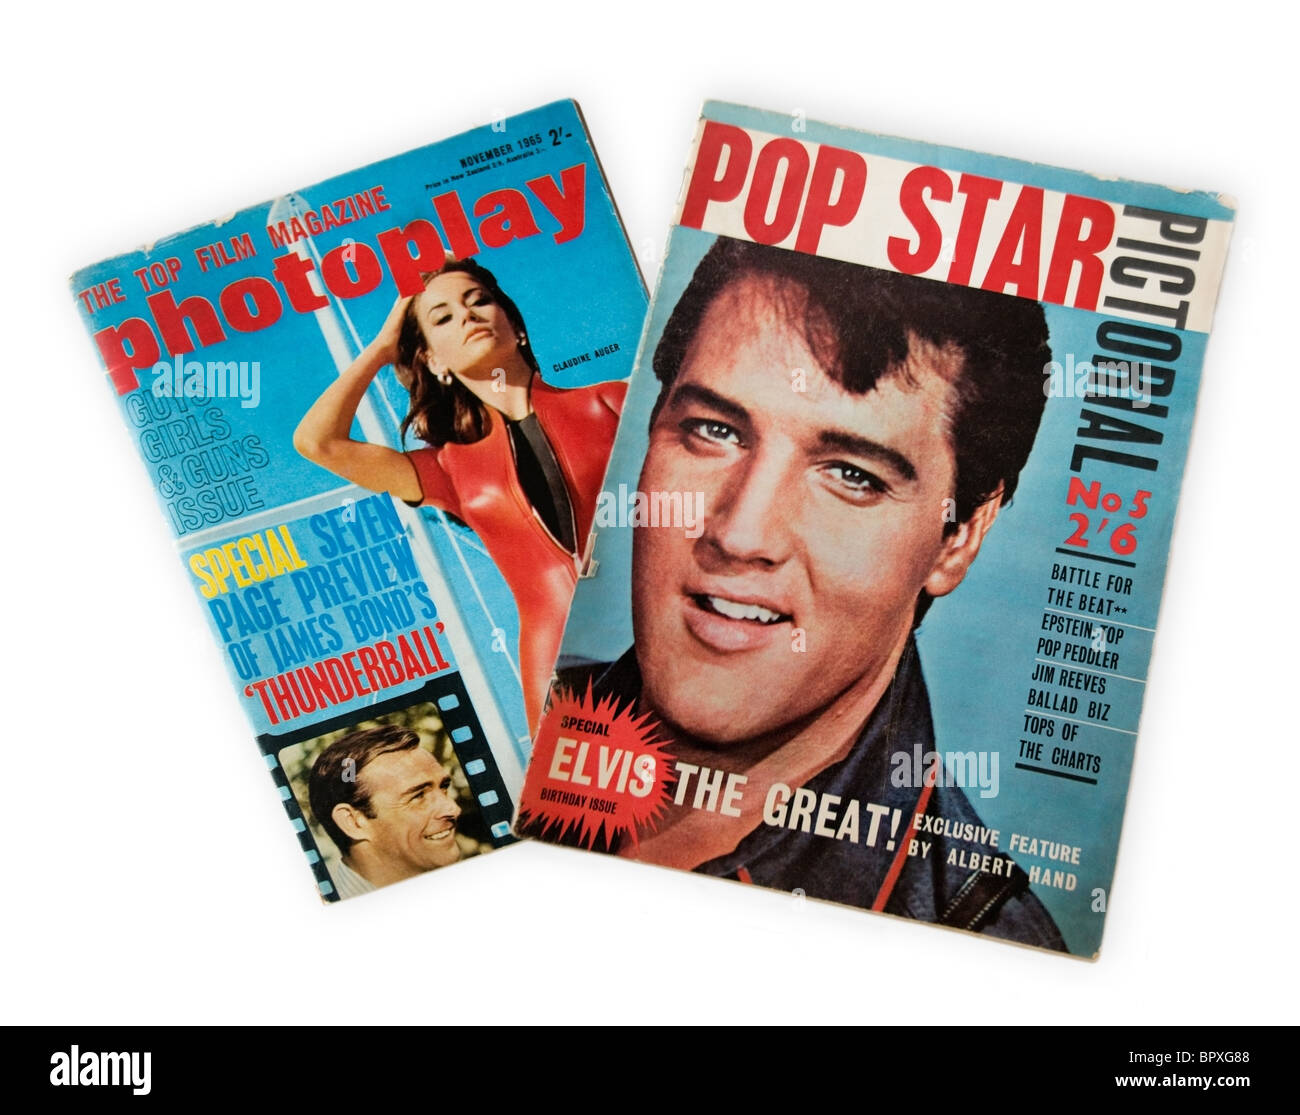 Two vintage magazines Photoplay and Pop Star Pictorial from 1965 on a white background - Stock Image